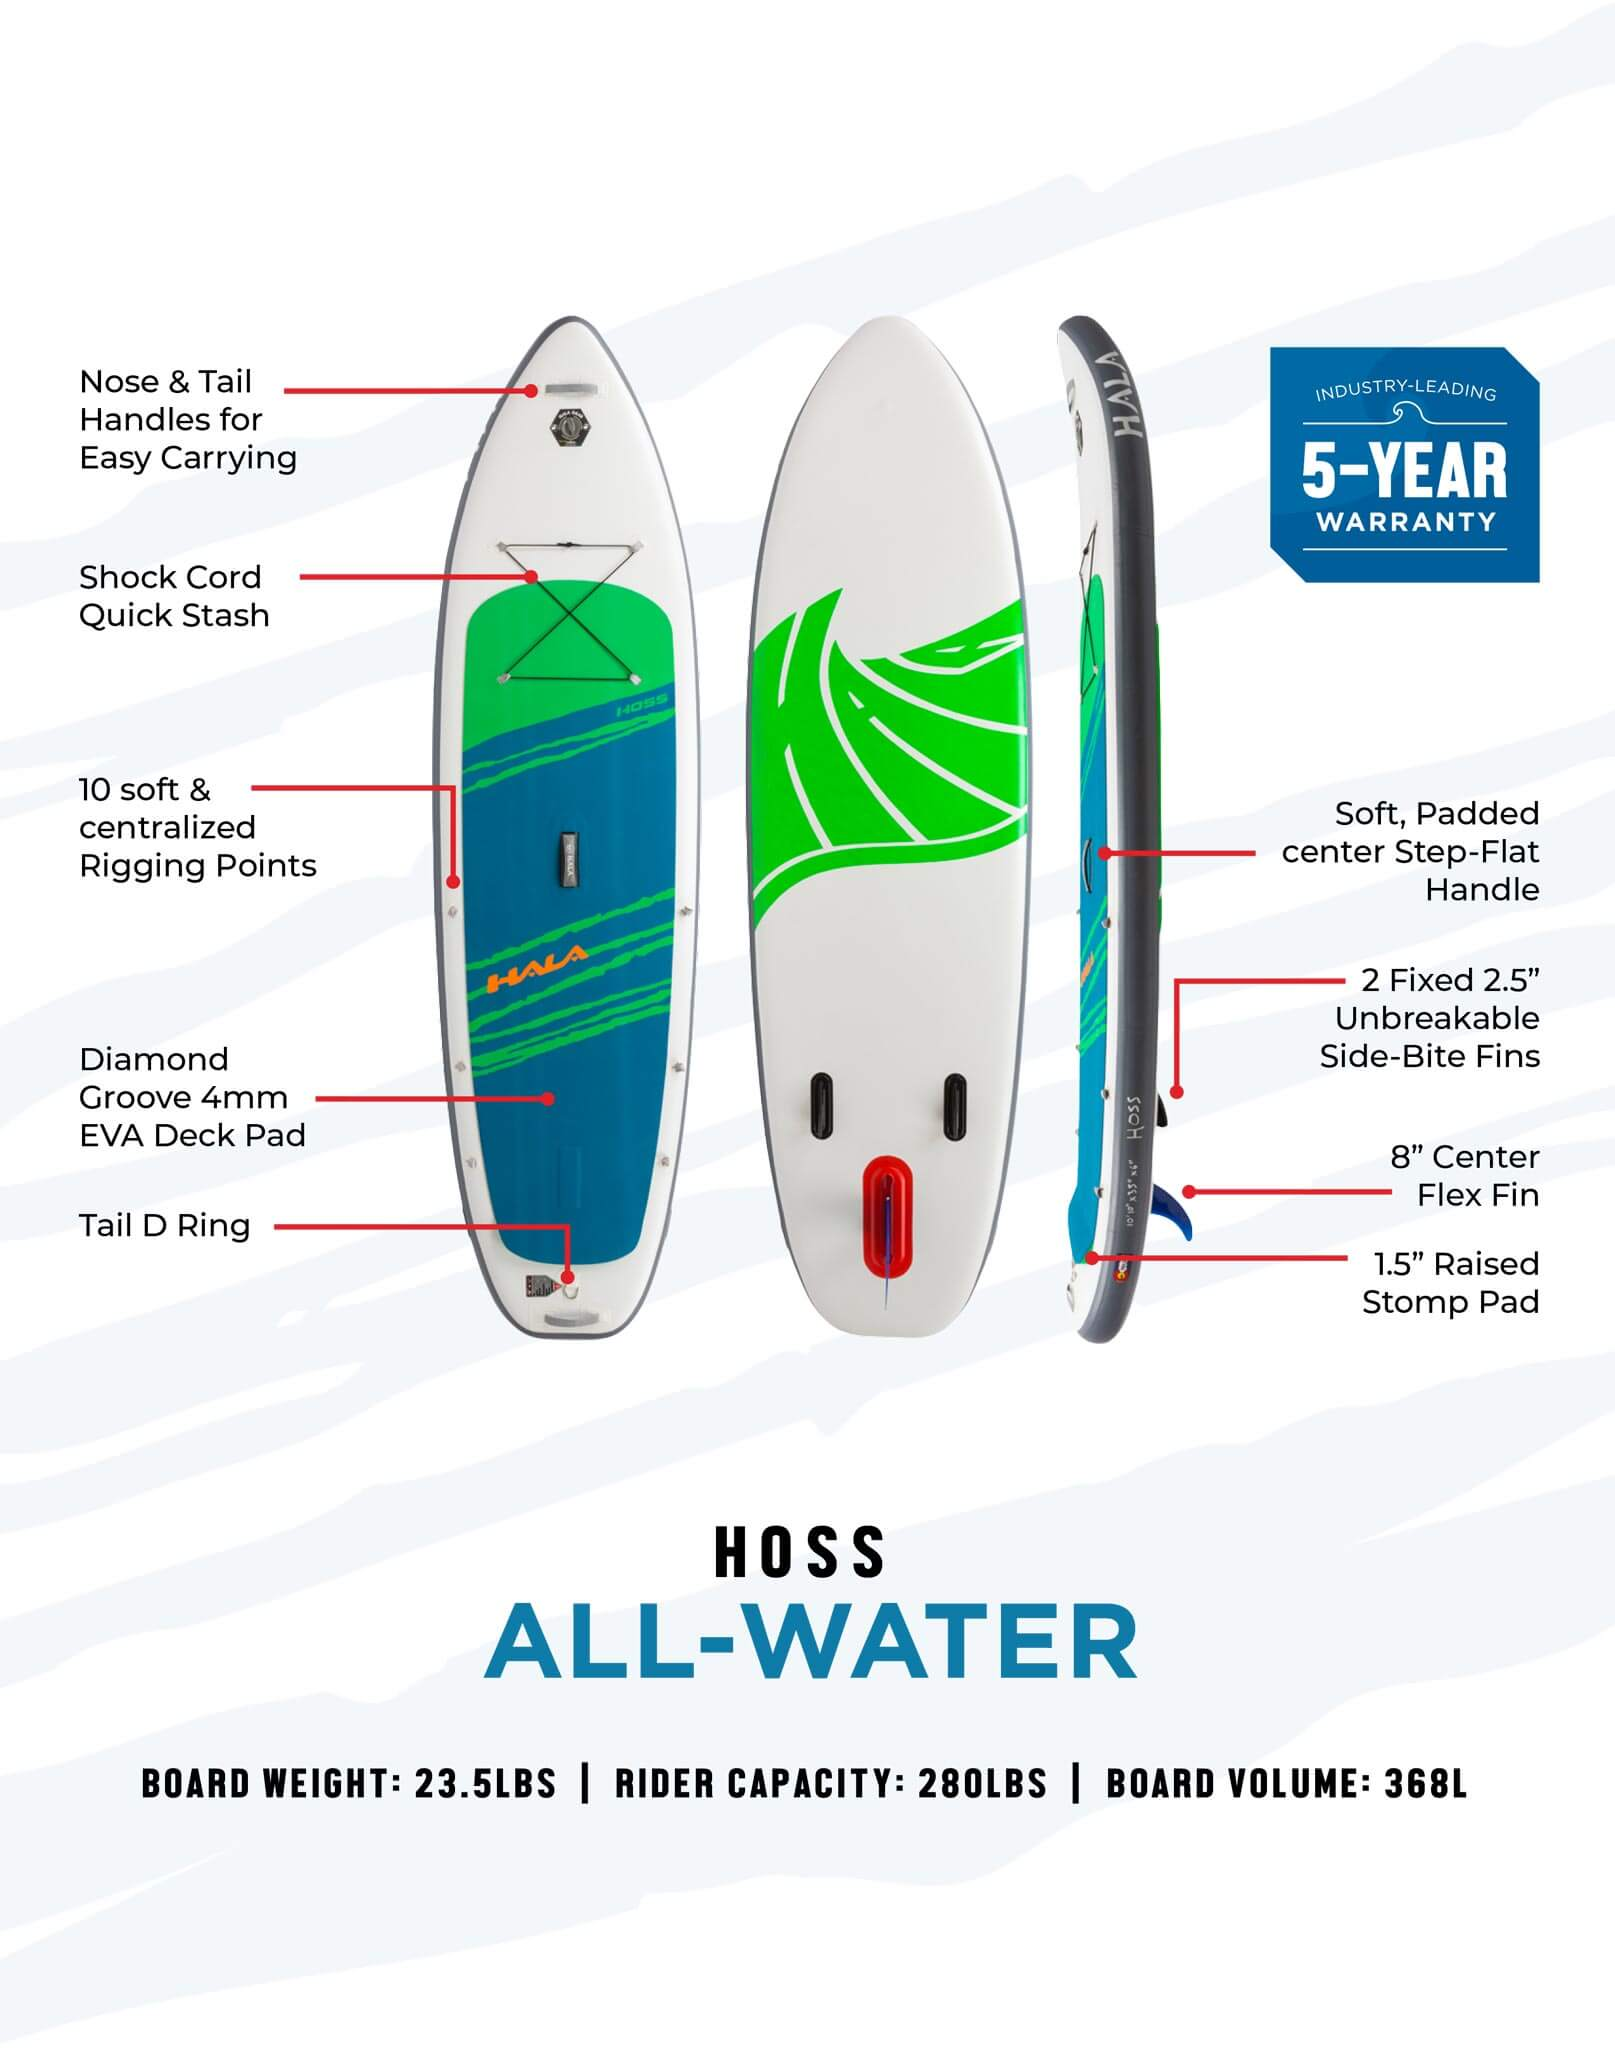 nose and tail handles for easy carrying. shock cord quick stash. 10 soft & centralized rigging points. diamond groove 4mm eva deck pad. tail d ring. soft padding center step flat handle. 2 fixed 2.5